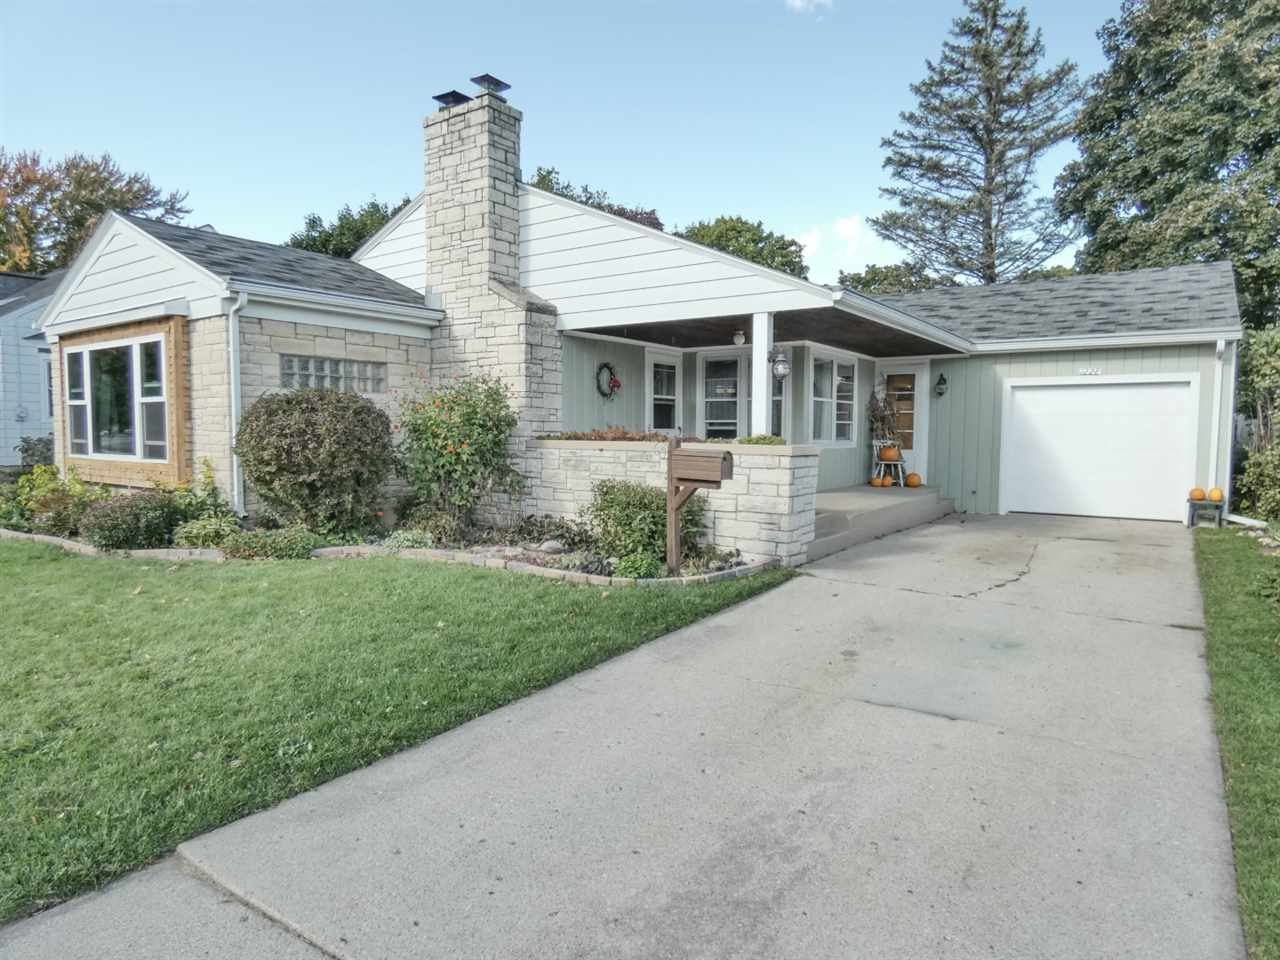 1228 REED Street, Green Bay, WI 54303 - MLS#: 50230698